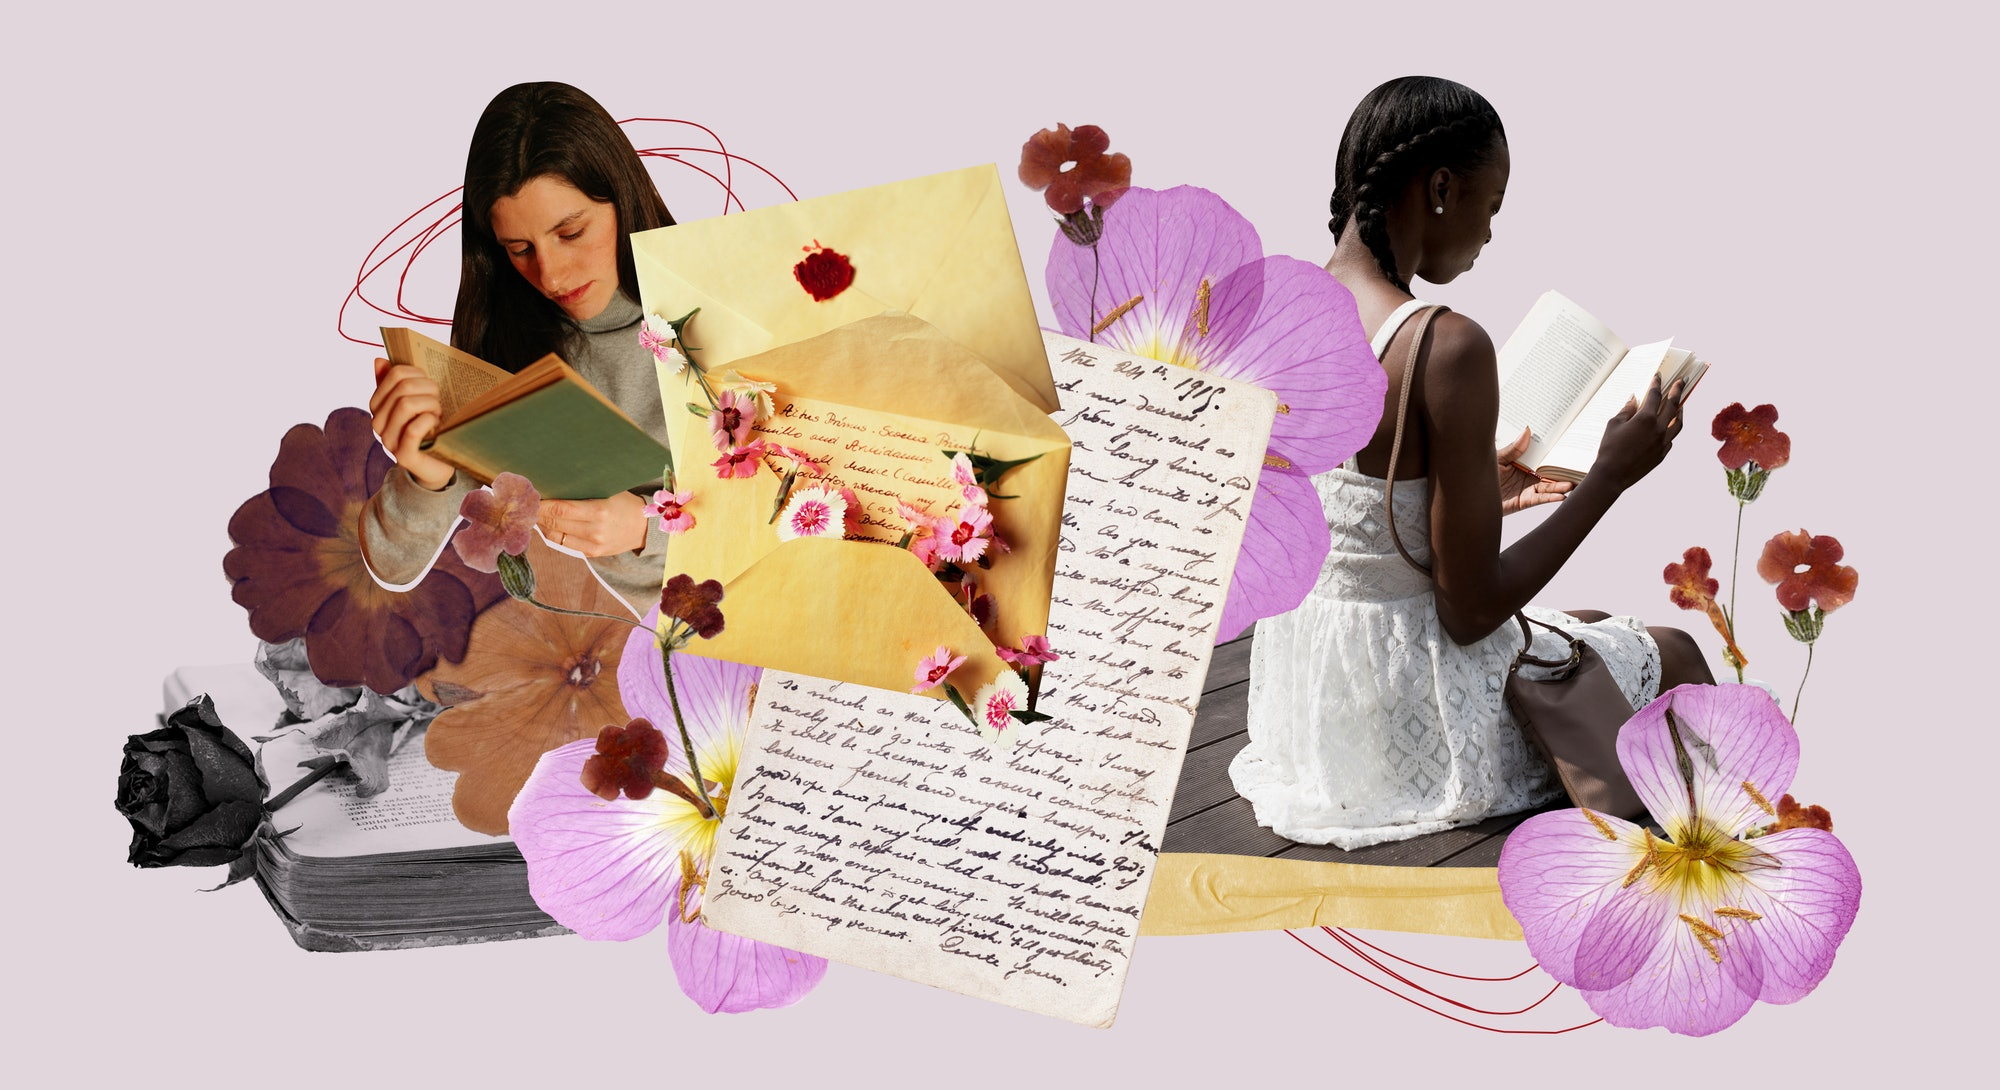 Romance novels, flowers, and love letters